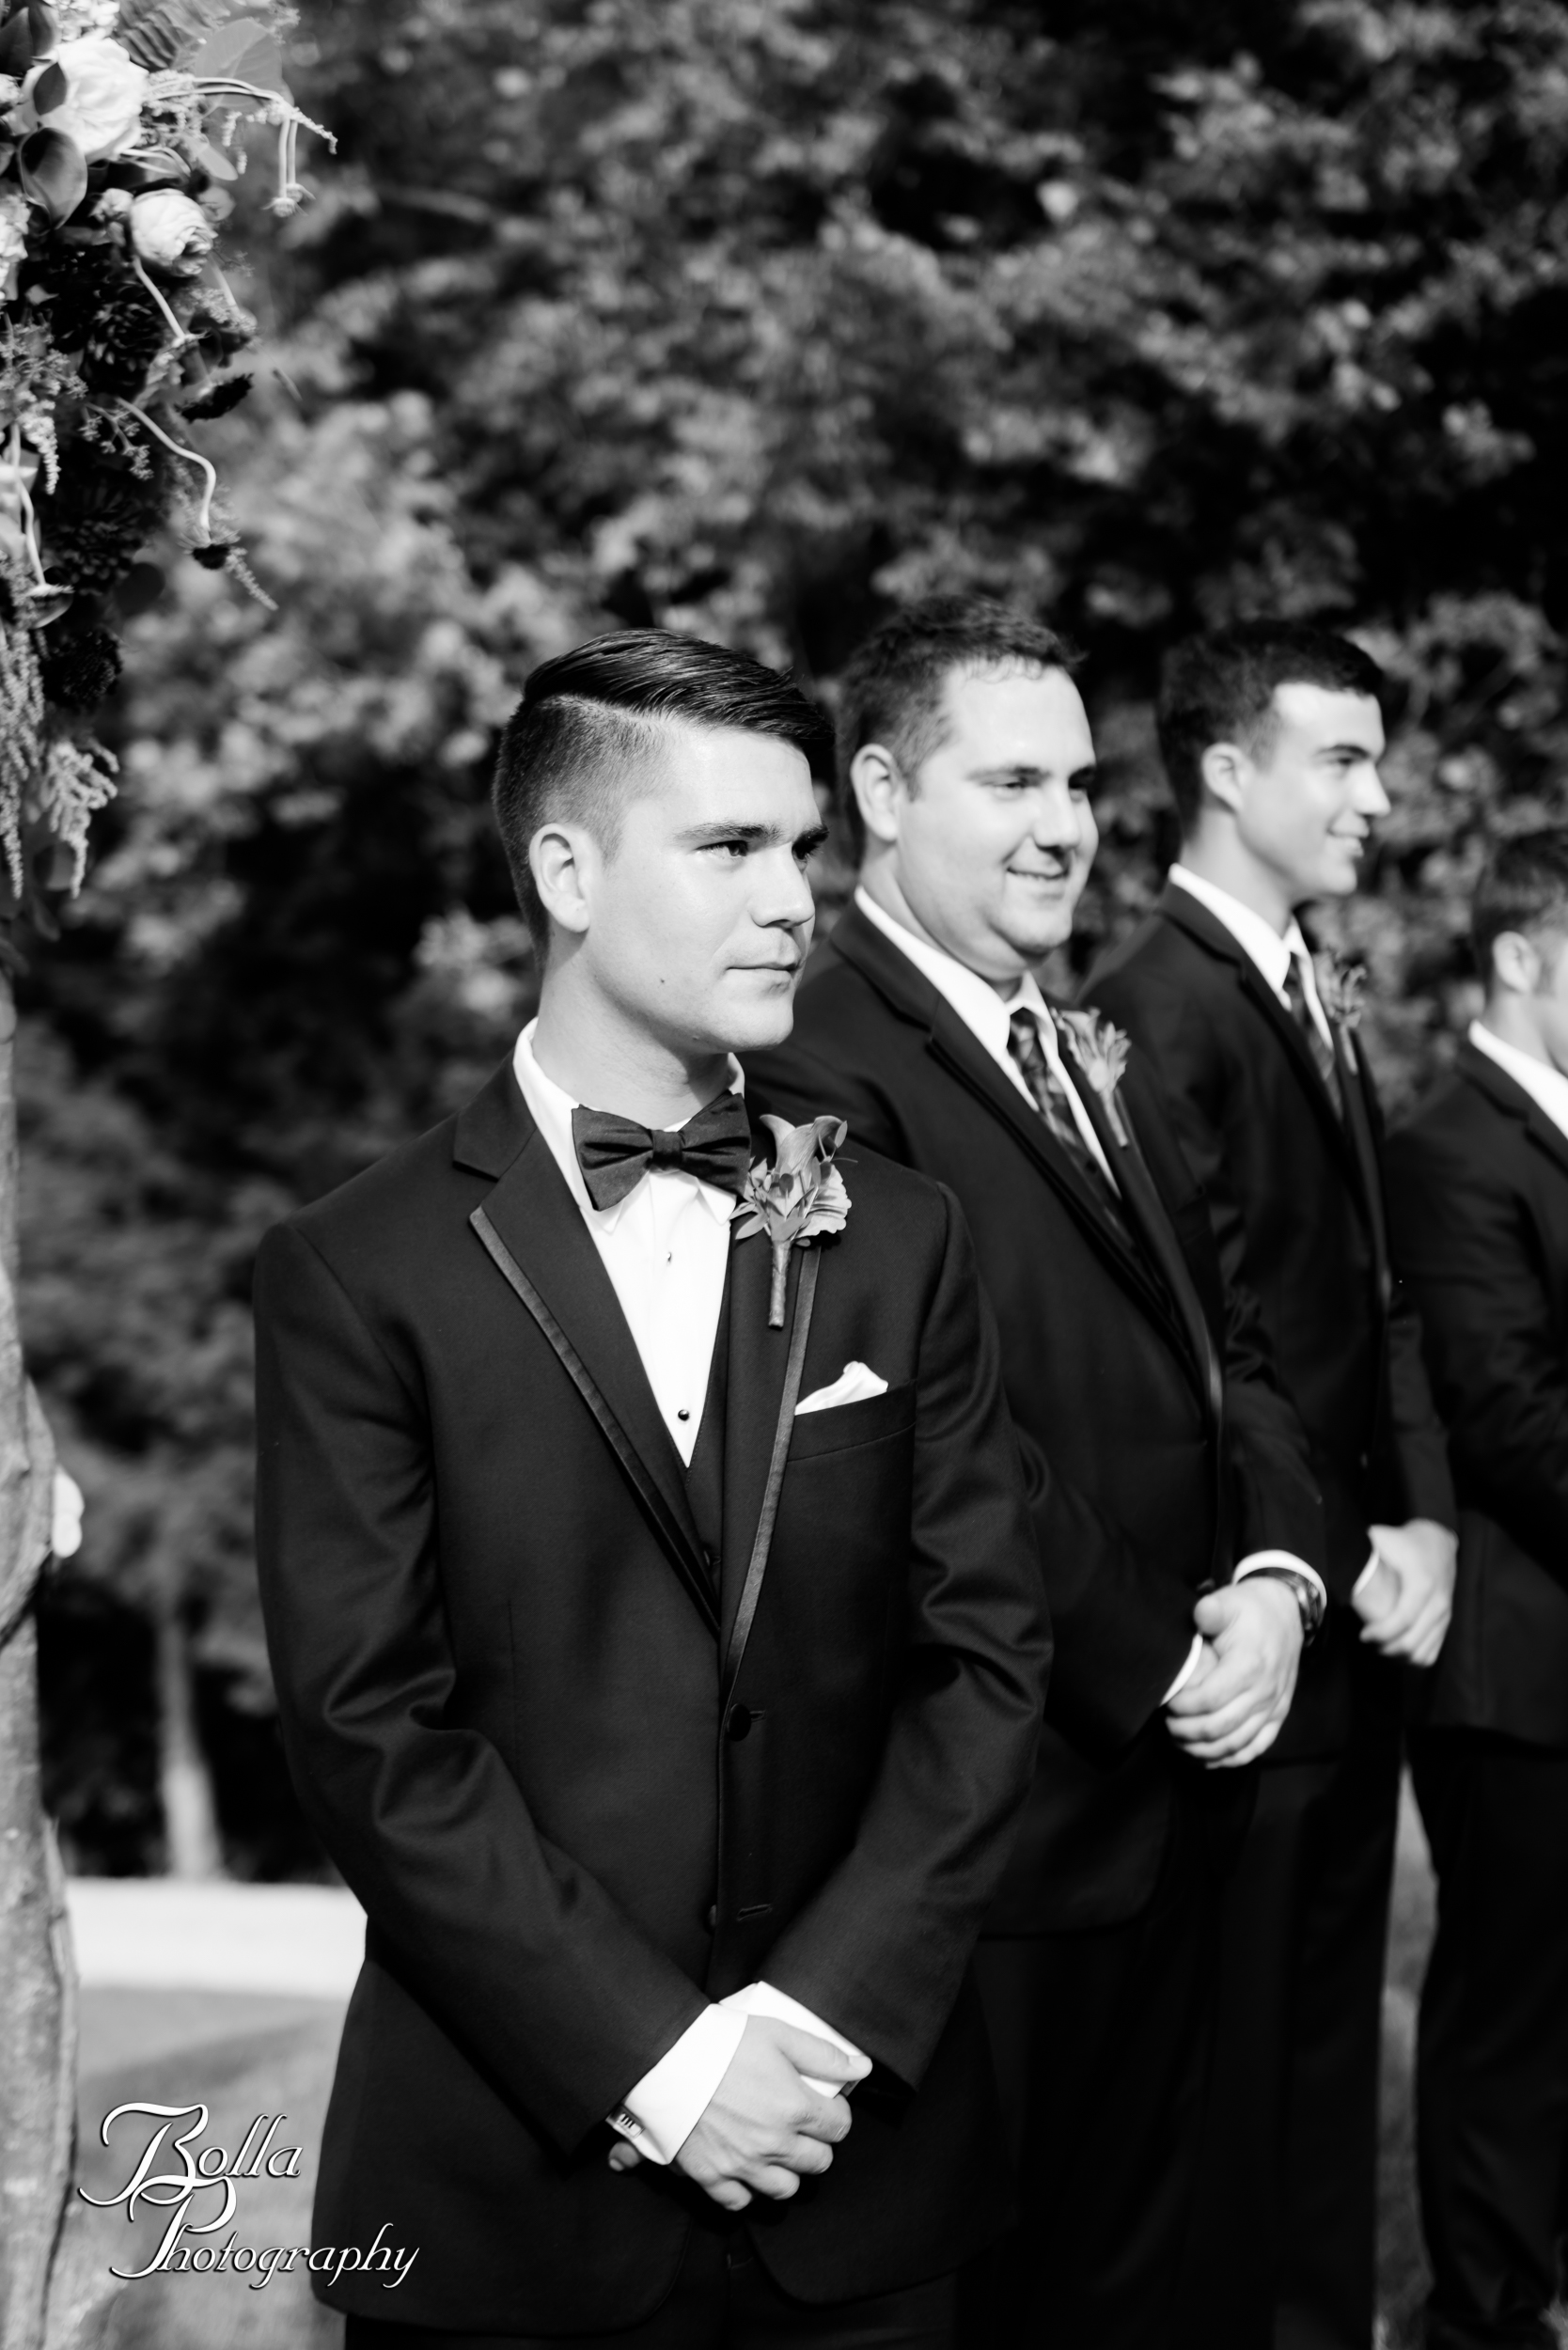 Bolla_photography_edwardsville_wedding_photographer_st_louis_weddings_Chaumette_winery_Mikusch-0341.jpg